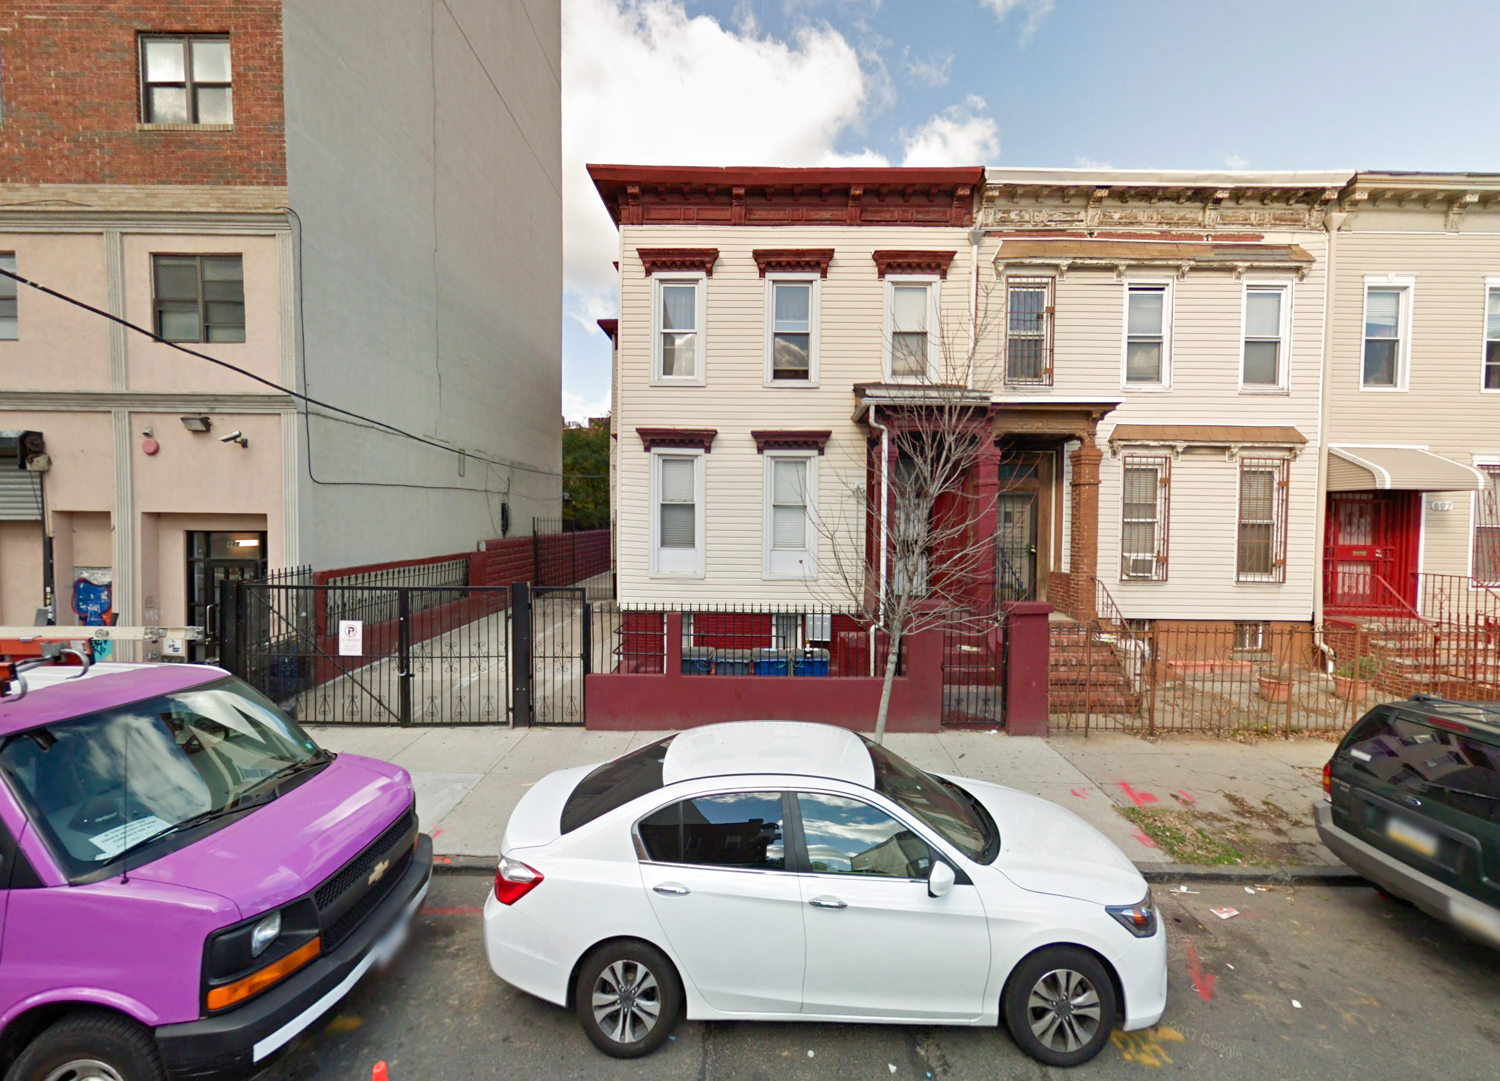 893 Willoughby Avenue, via Google Maps